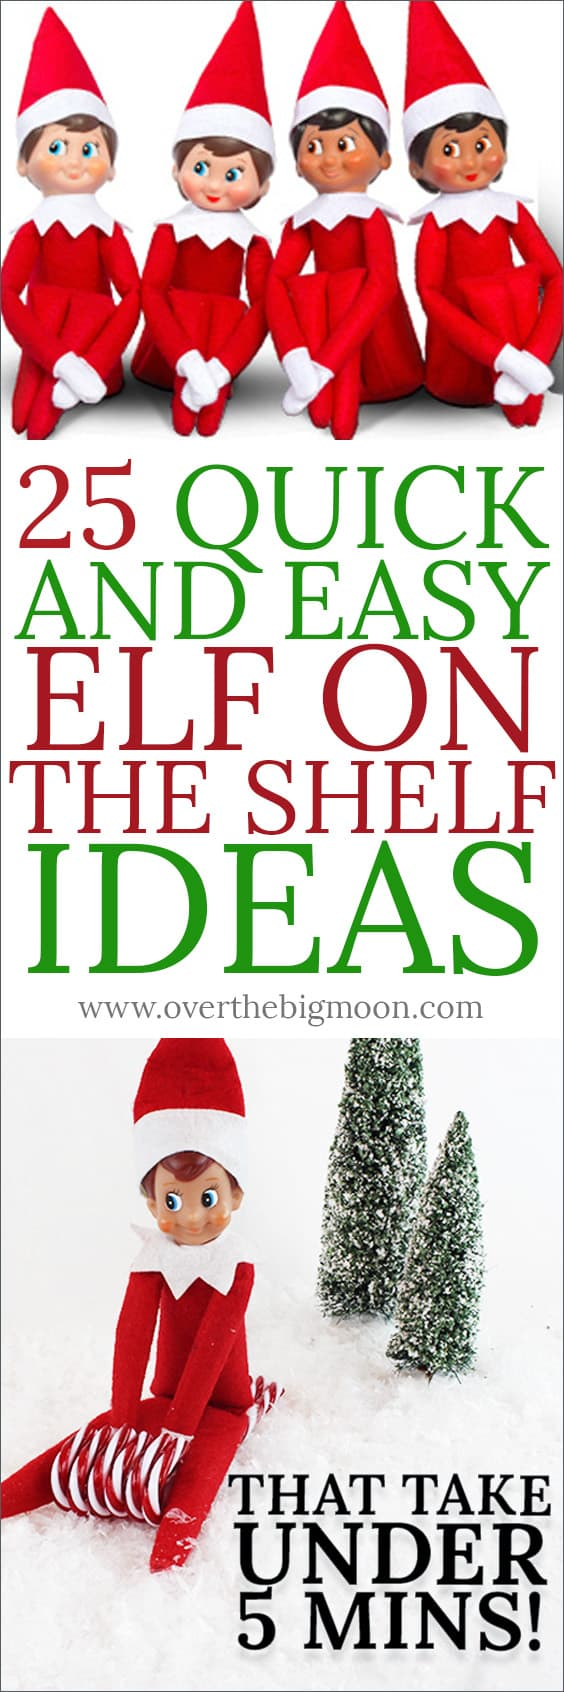 25 Quick and Easy Elf on the Shelf Ideas to help simplify your Elf Season! Check them out here! From overthebigmoon.com!